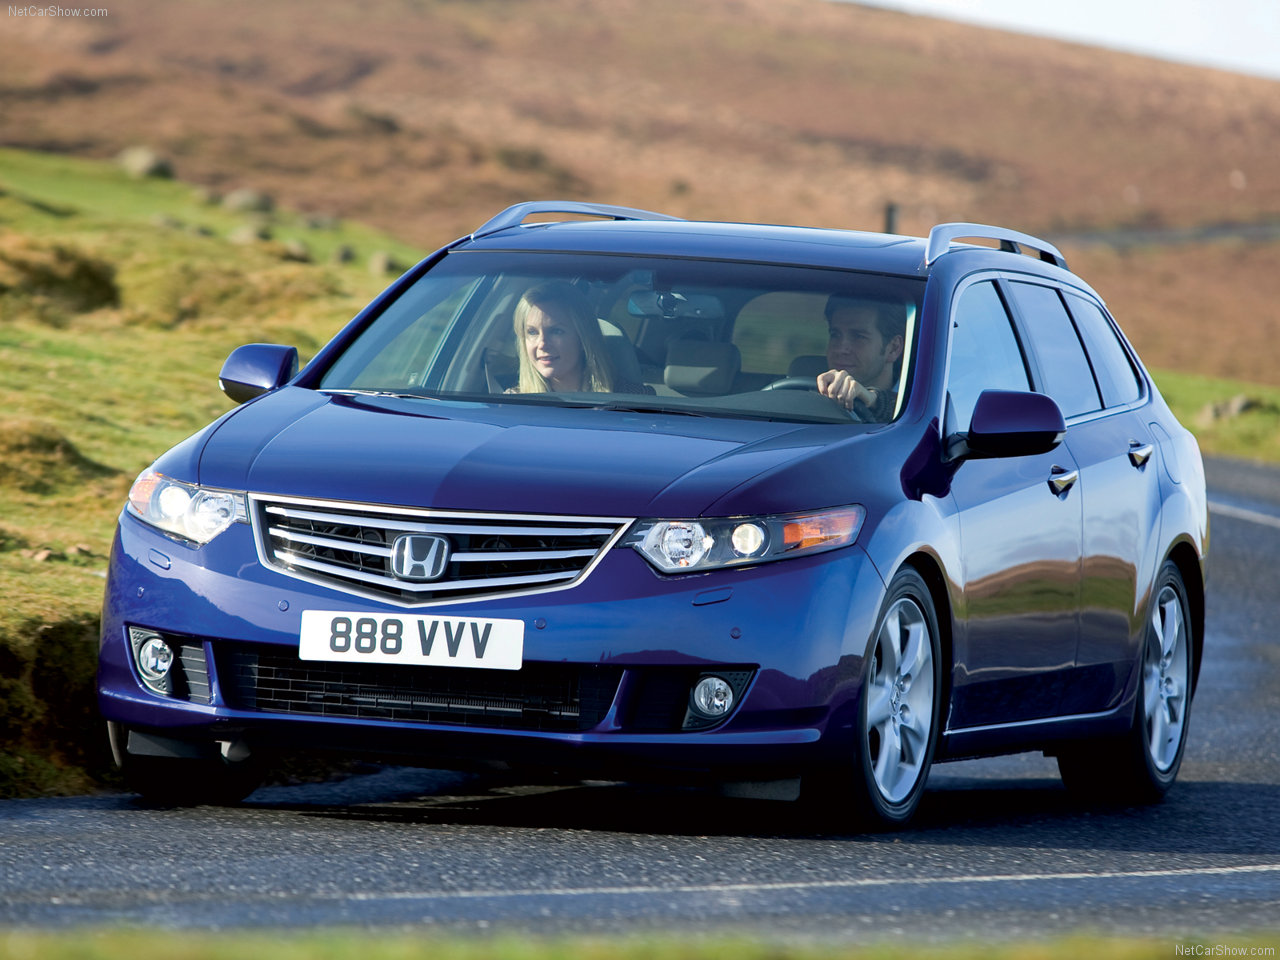 2009 Honda Accord Tourer-3.bp.blogspot.com